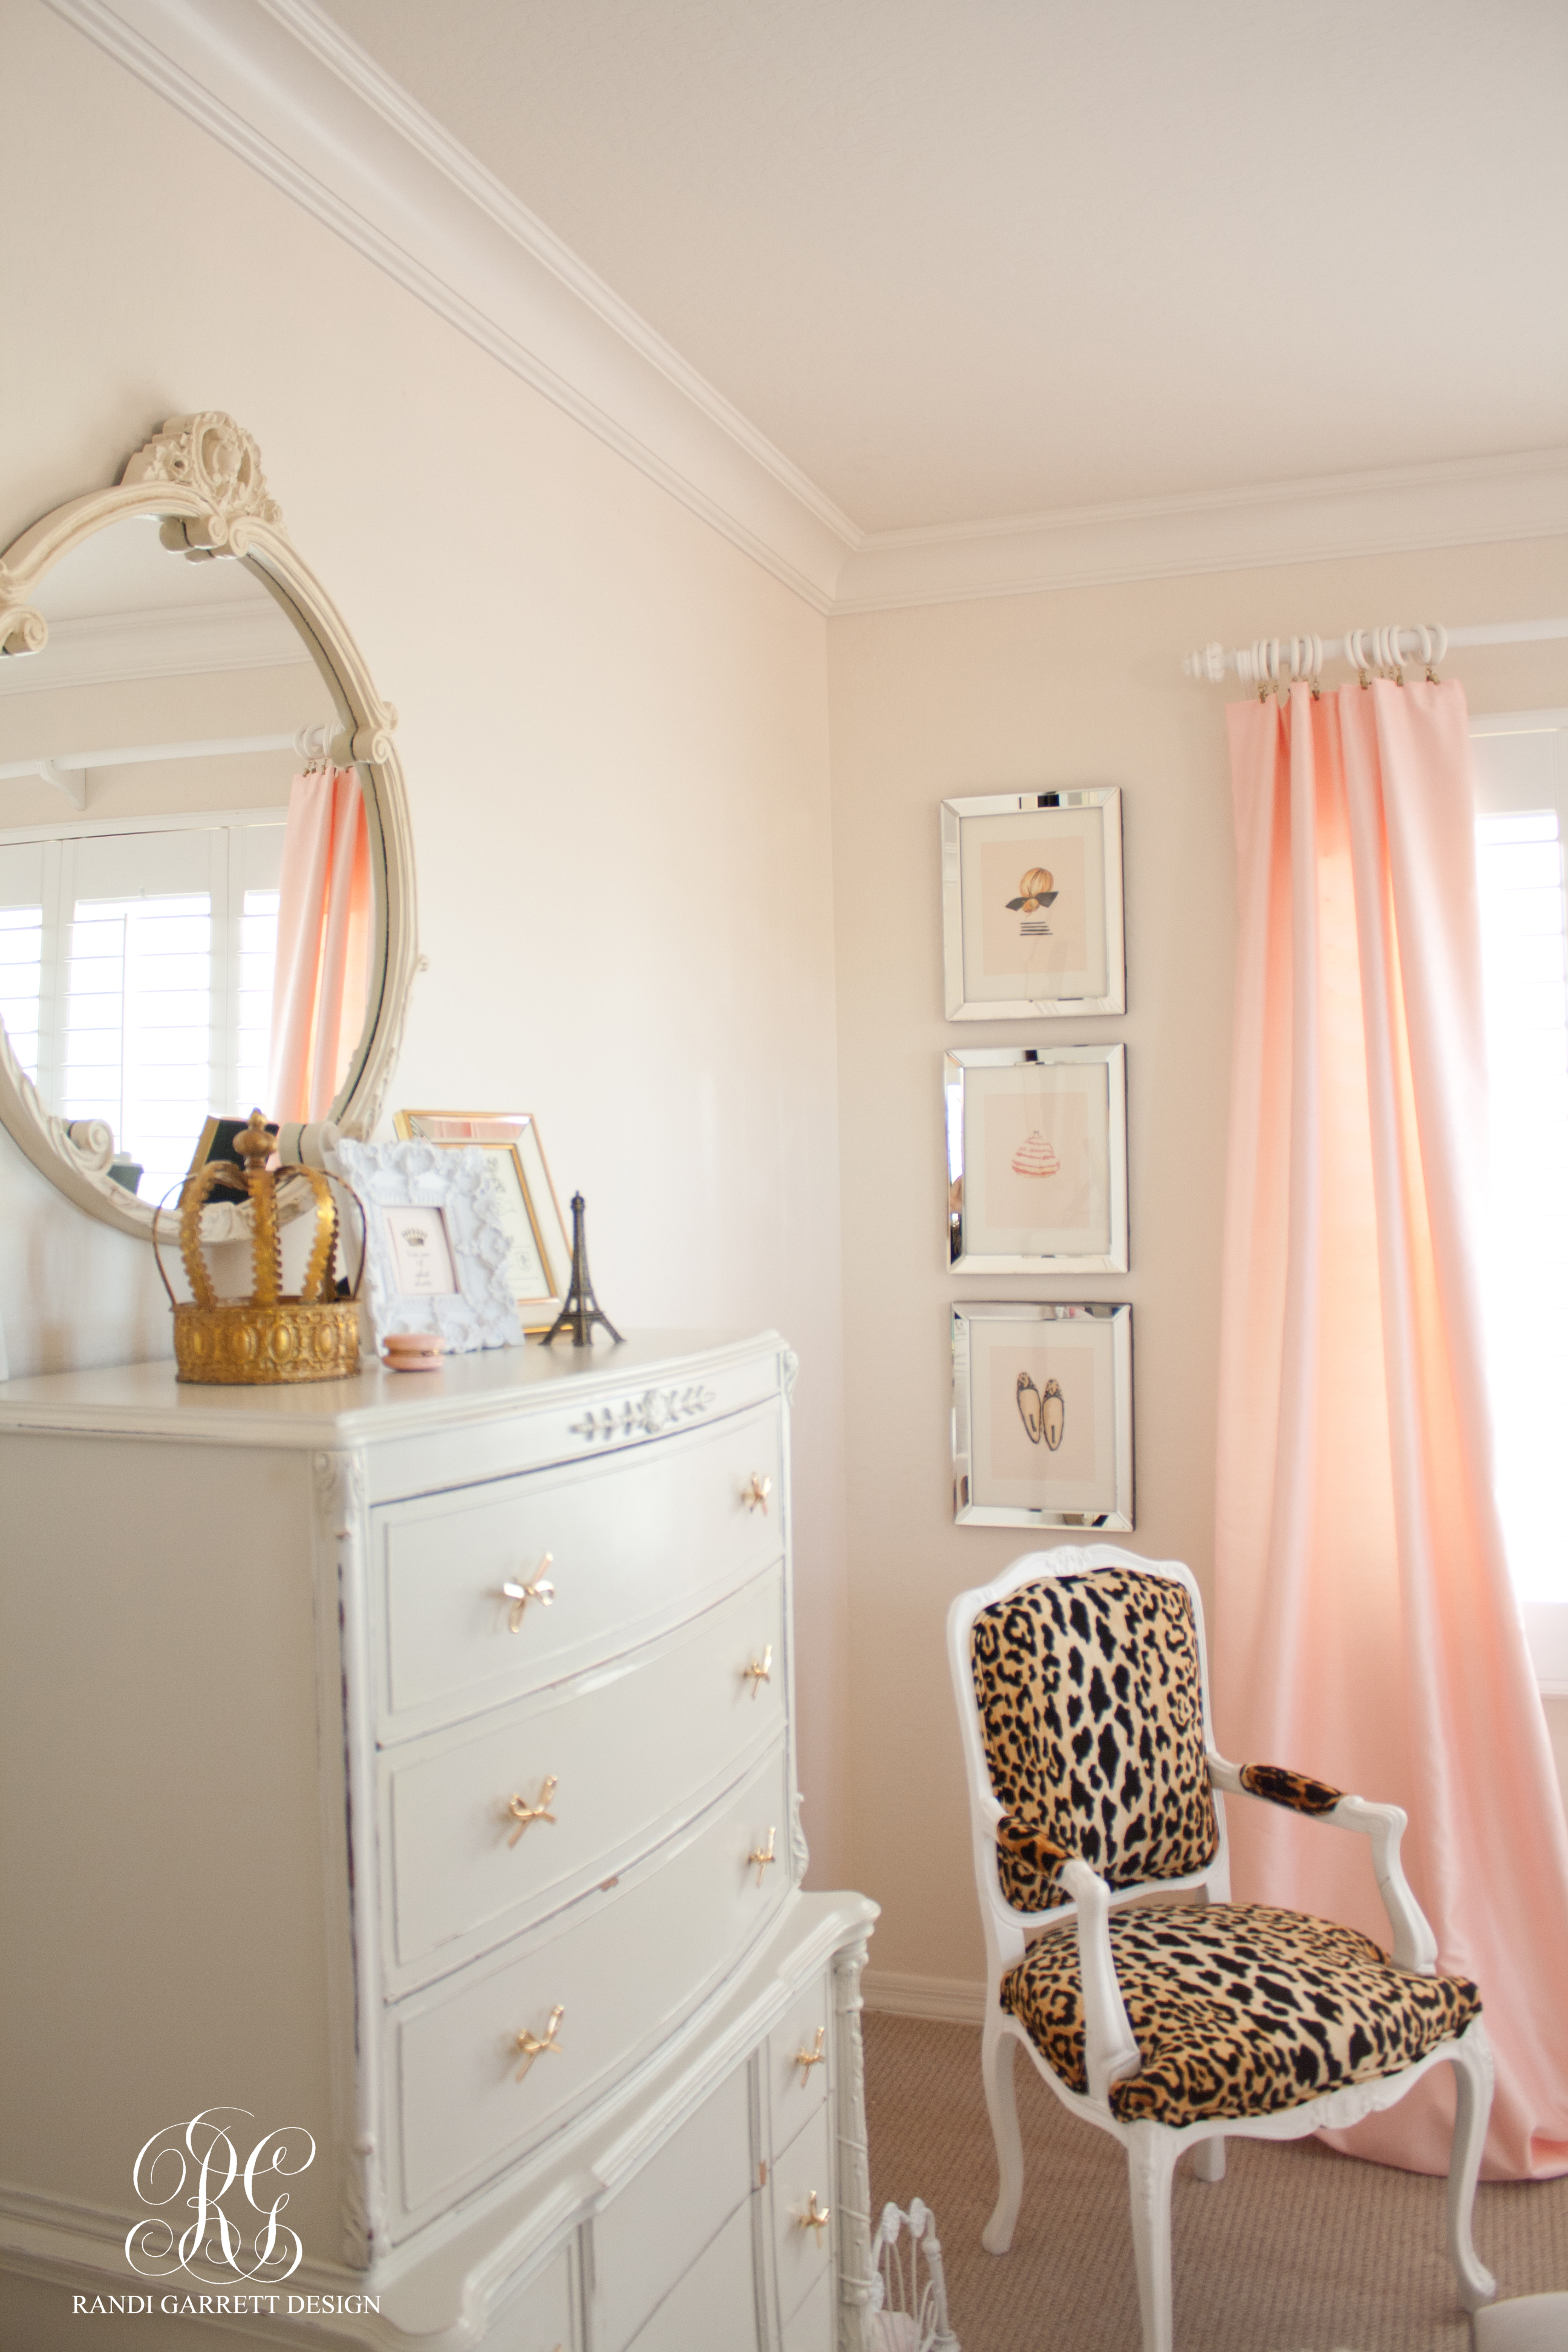 Pink silk drapes and leopard chair by Randi Garrett Design